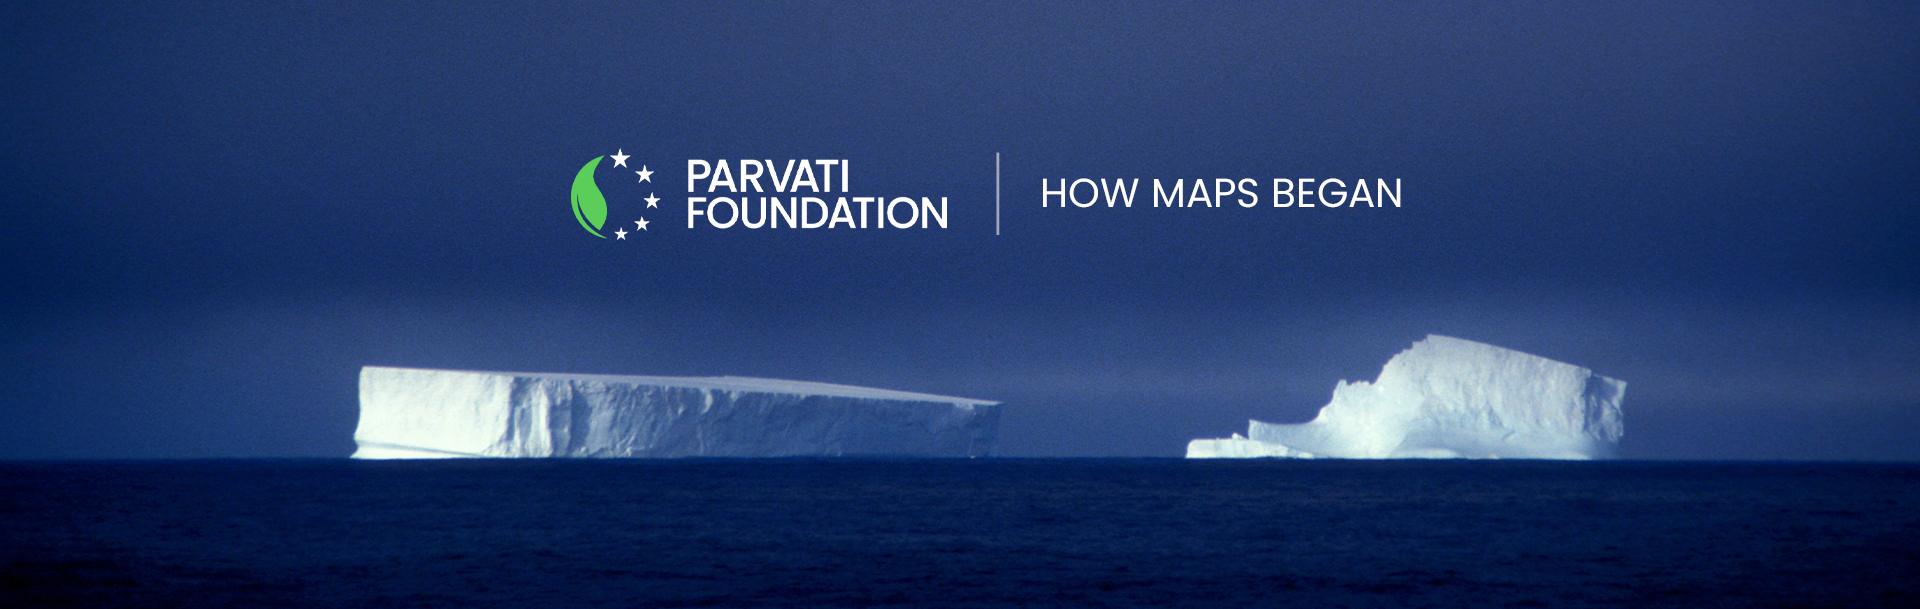 Parvati Foundation, How MAPS began